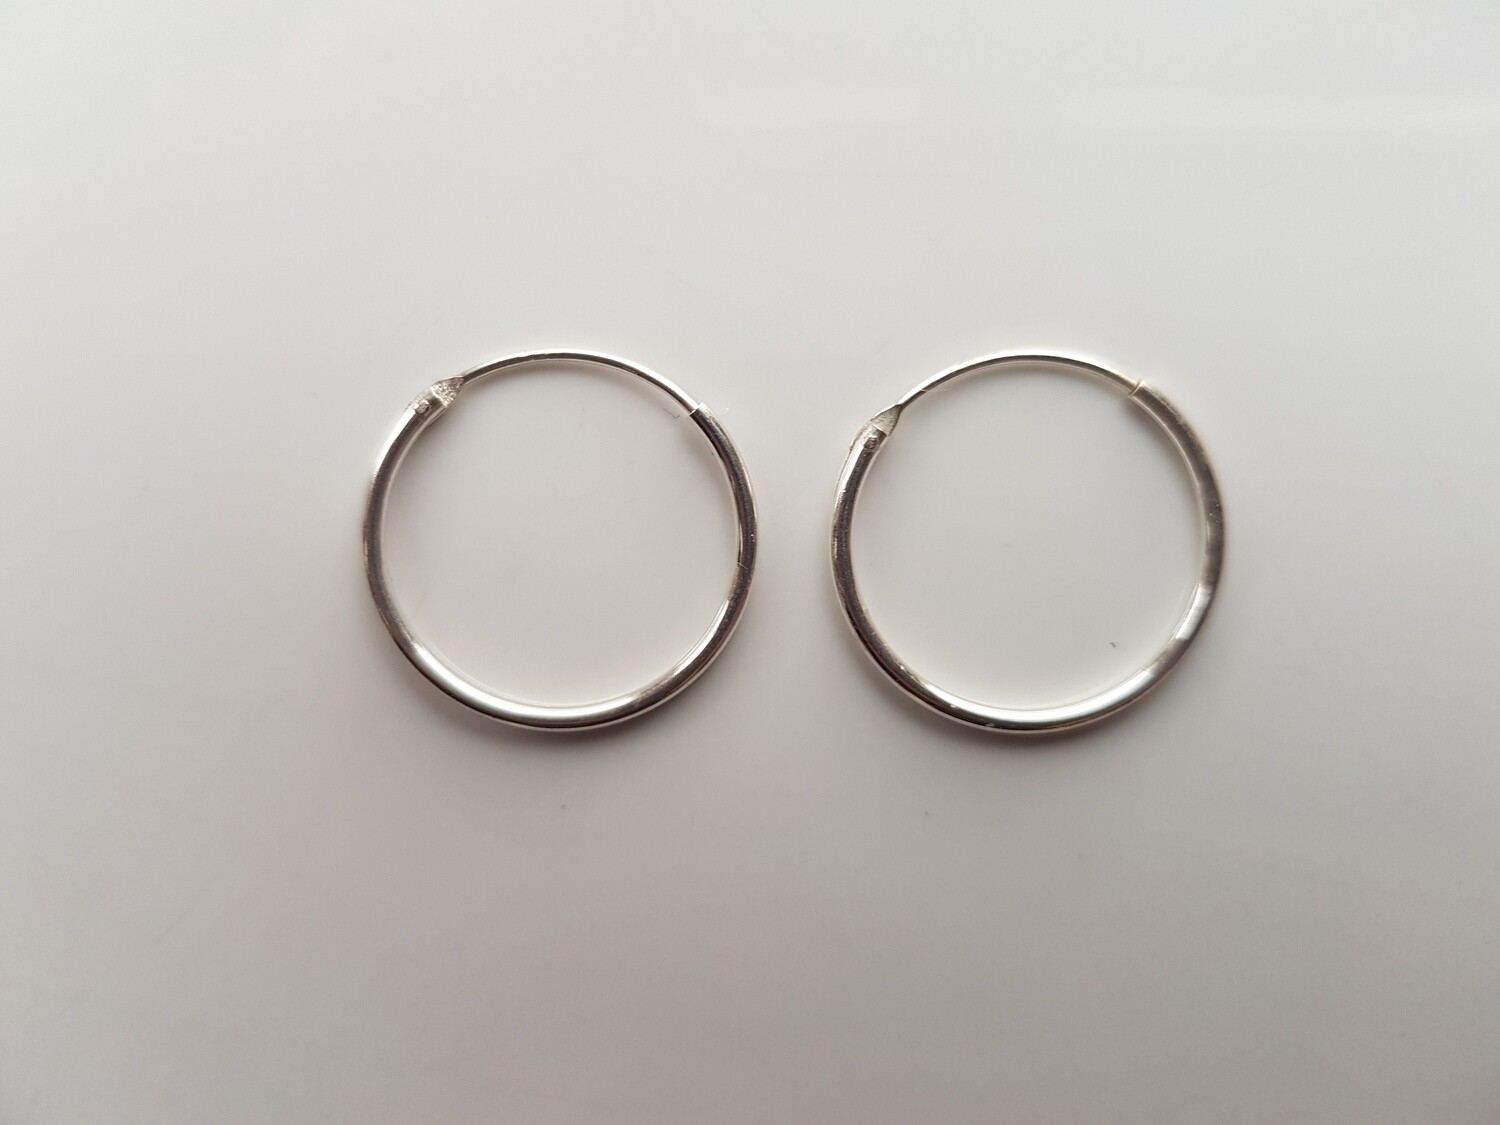 Oorringetjes 925 sterling zilver 18mm